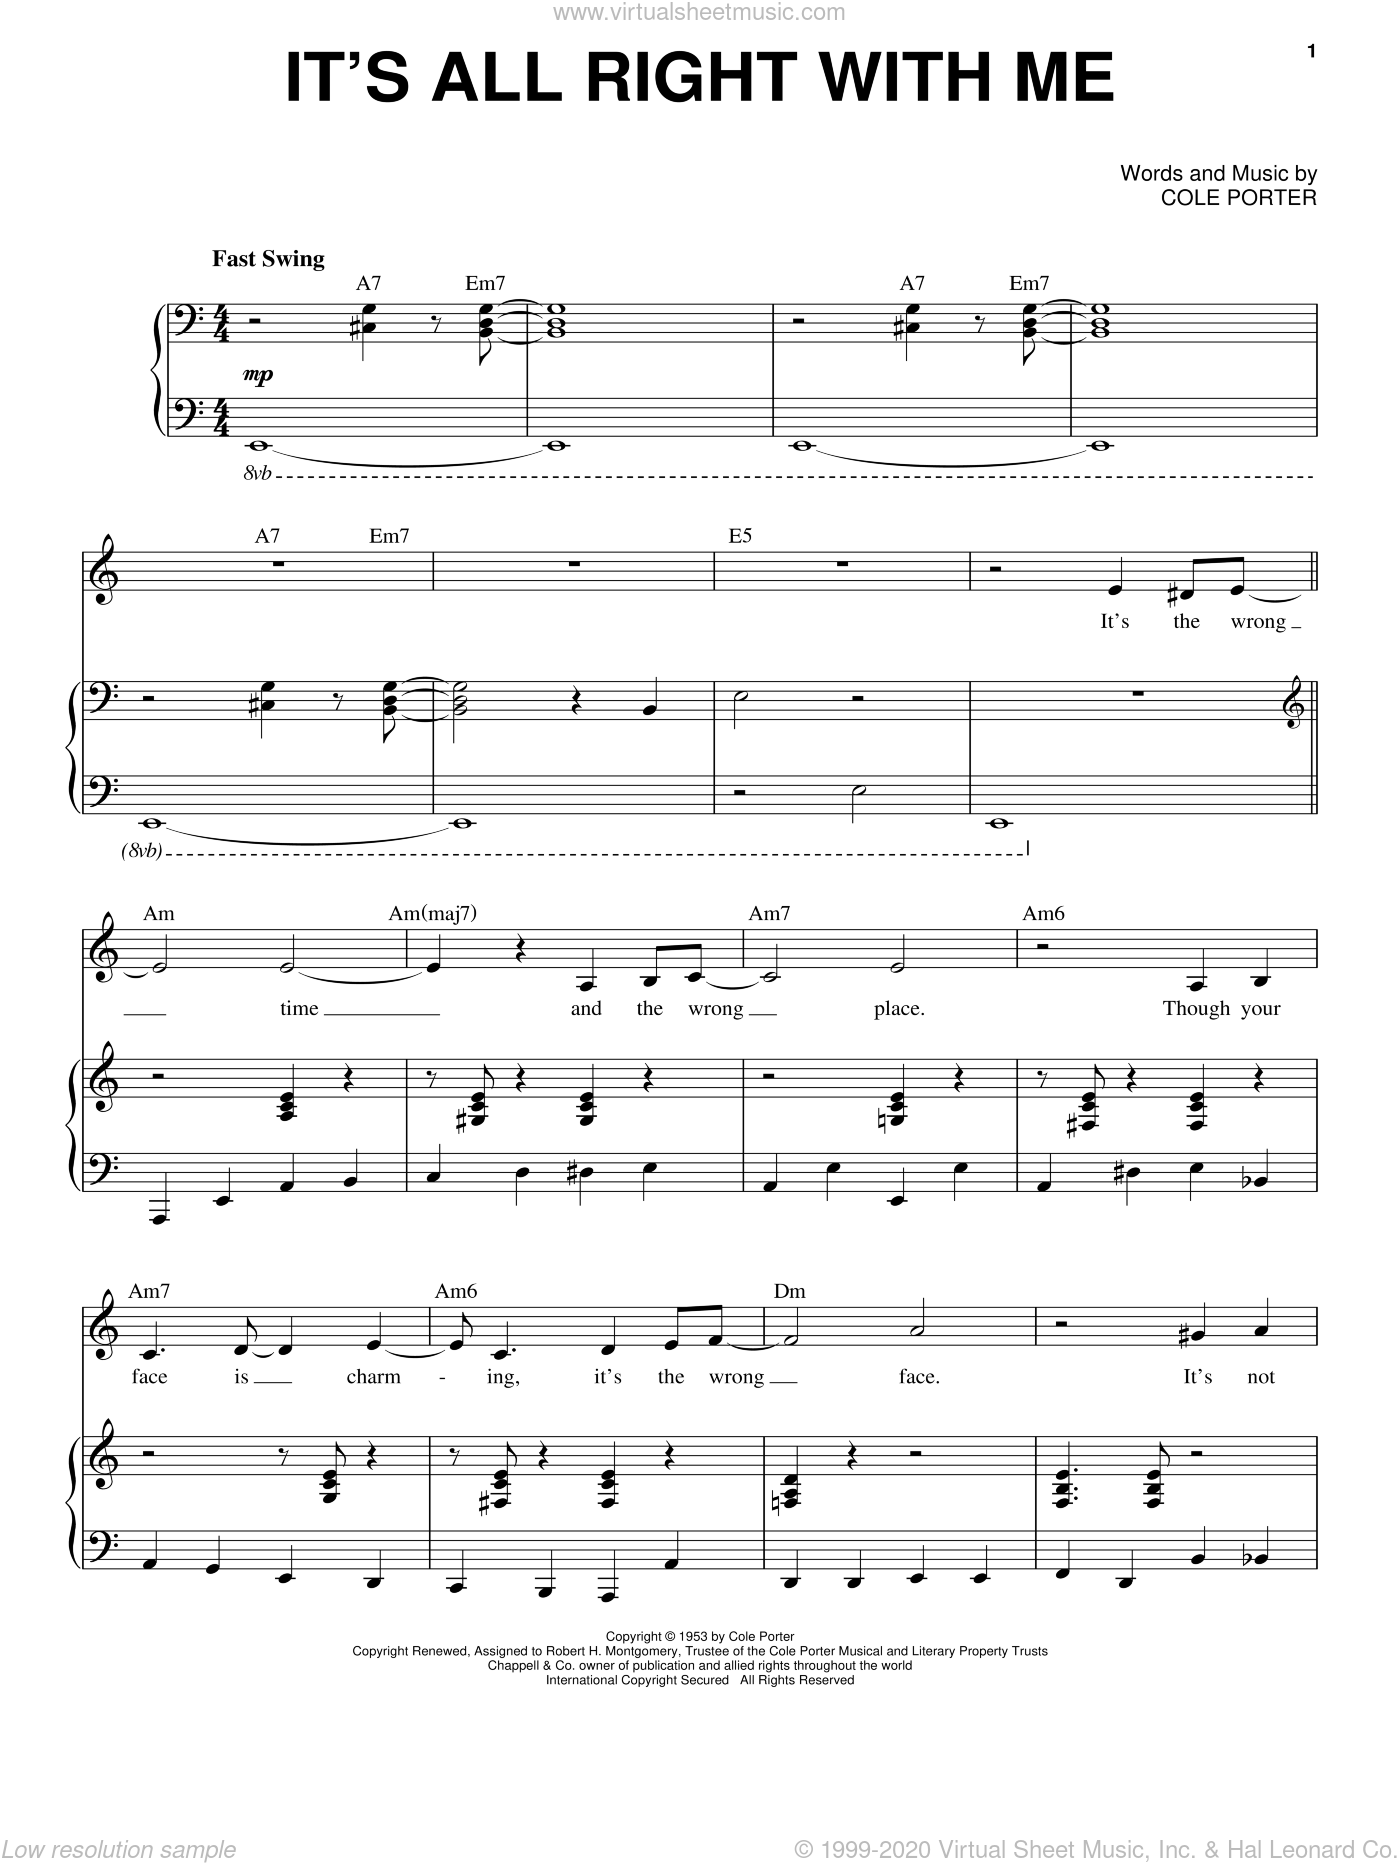 It's All Right With Me sheet music for voice and piano by Frank Sinatra